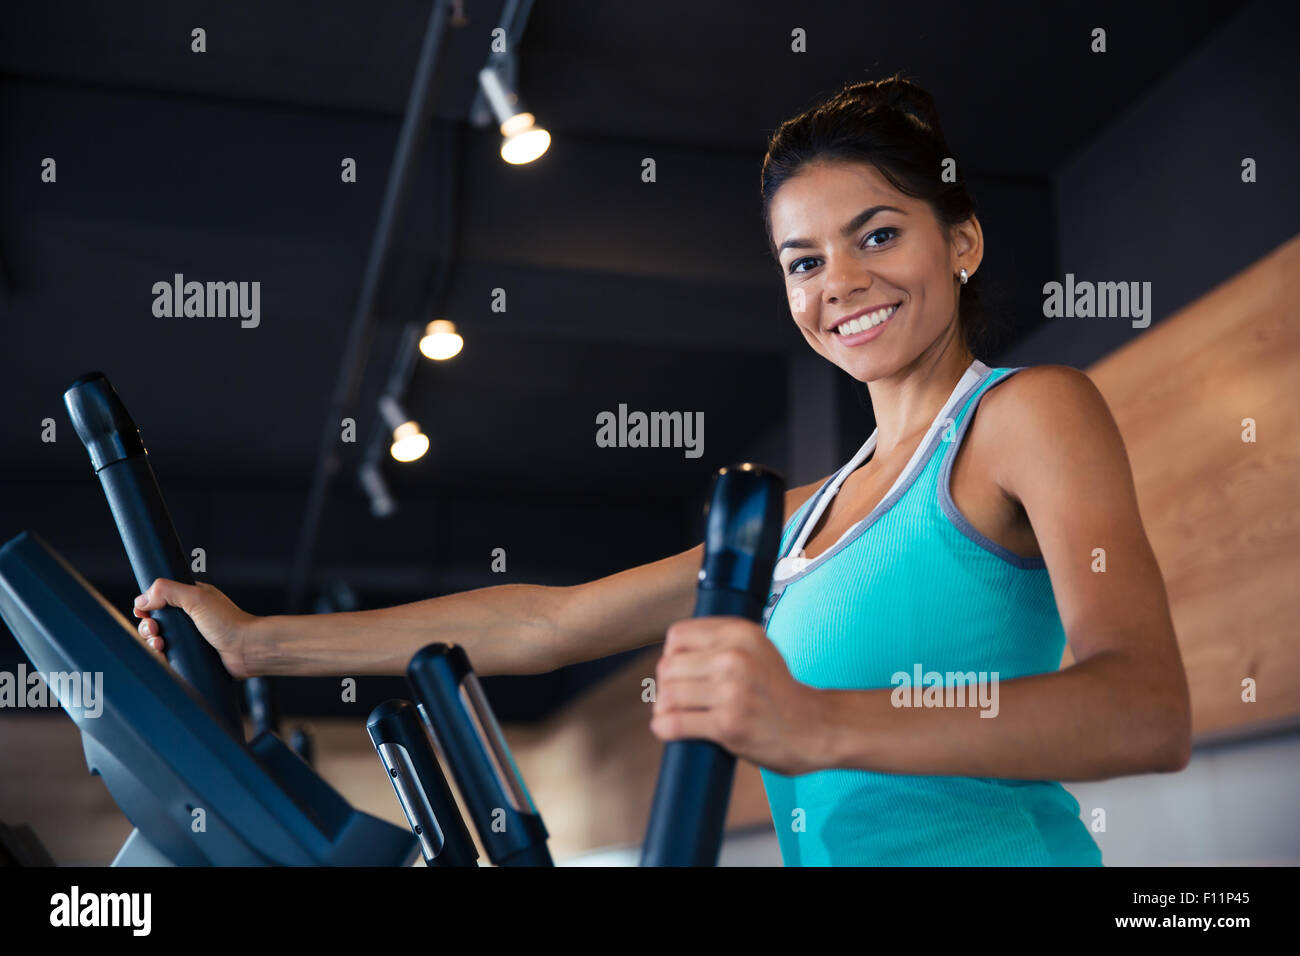 Smiling woman workout on exercises machine in fitness gym and looking at camera Stock Photo